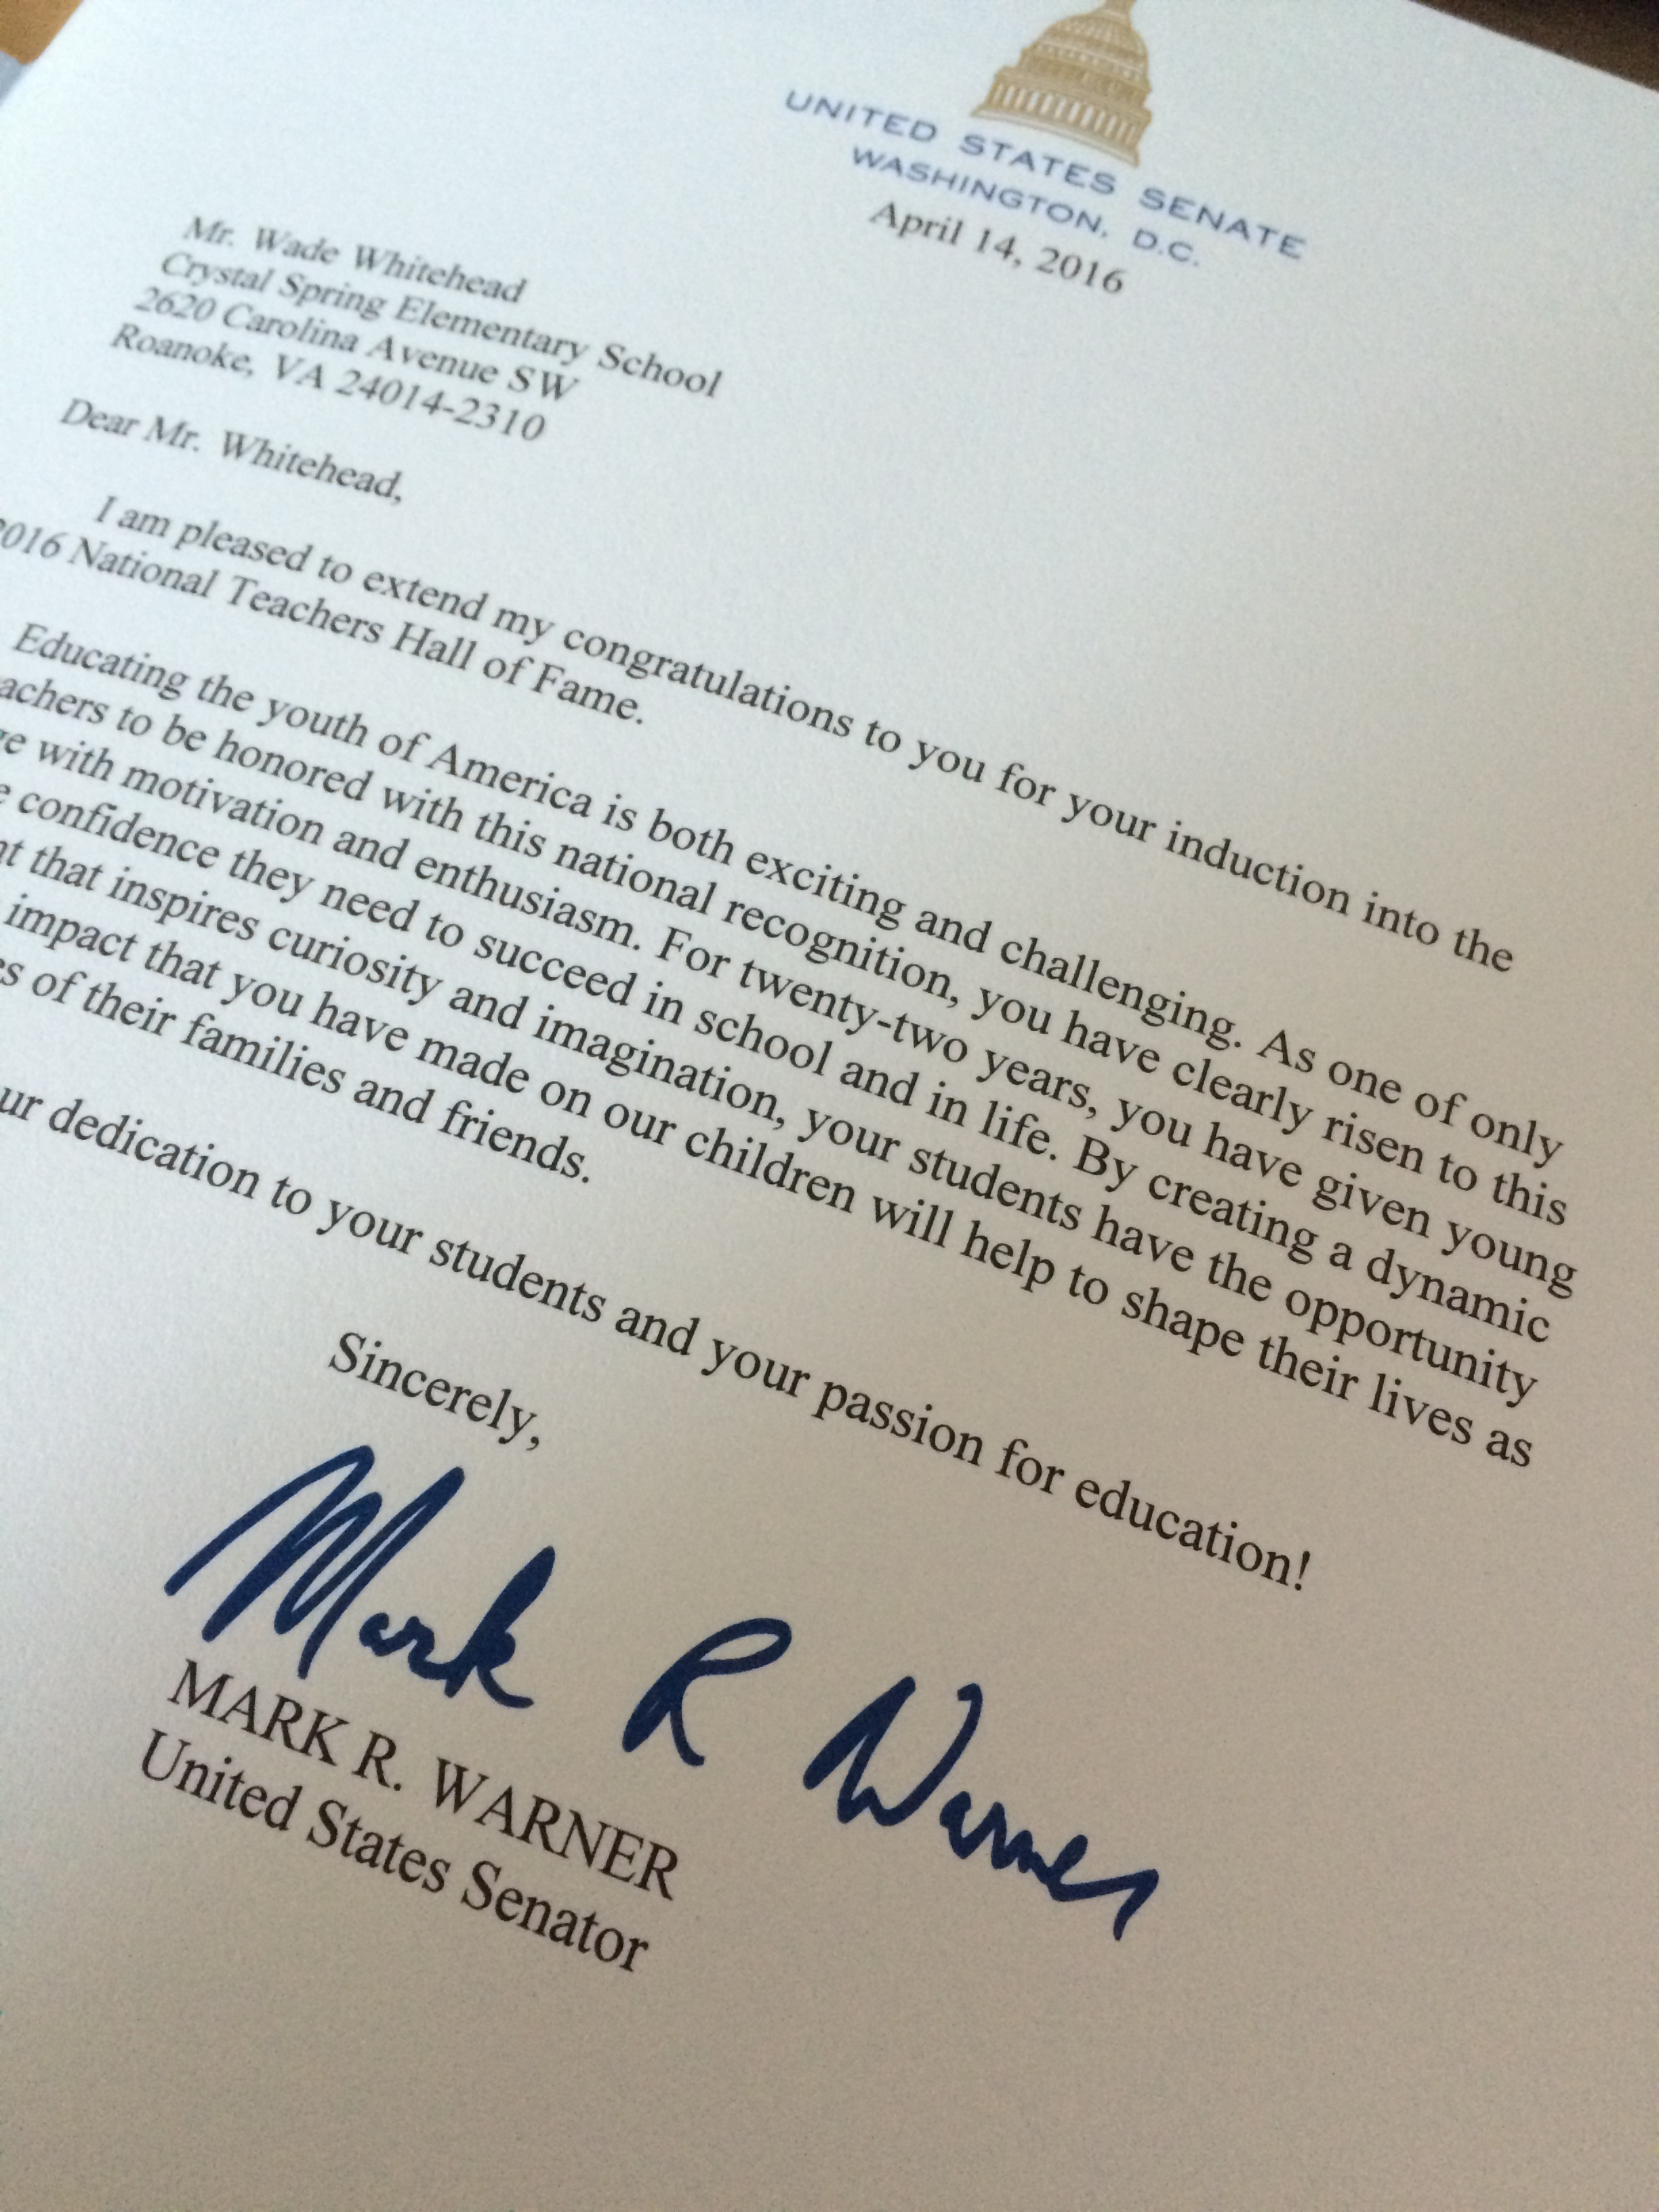 letter from US Senator Mark Warner